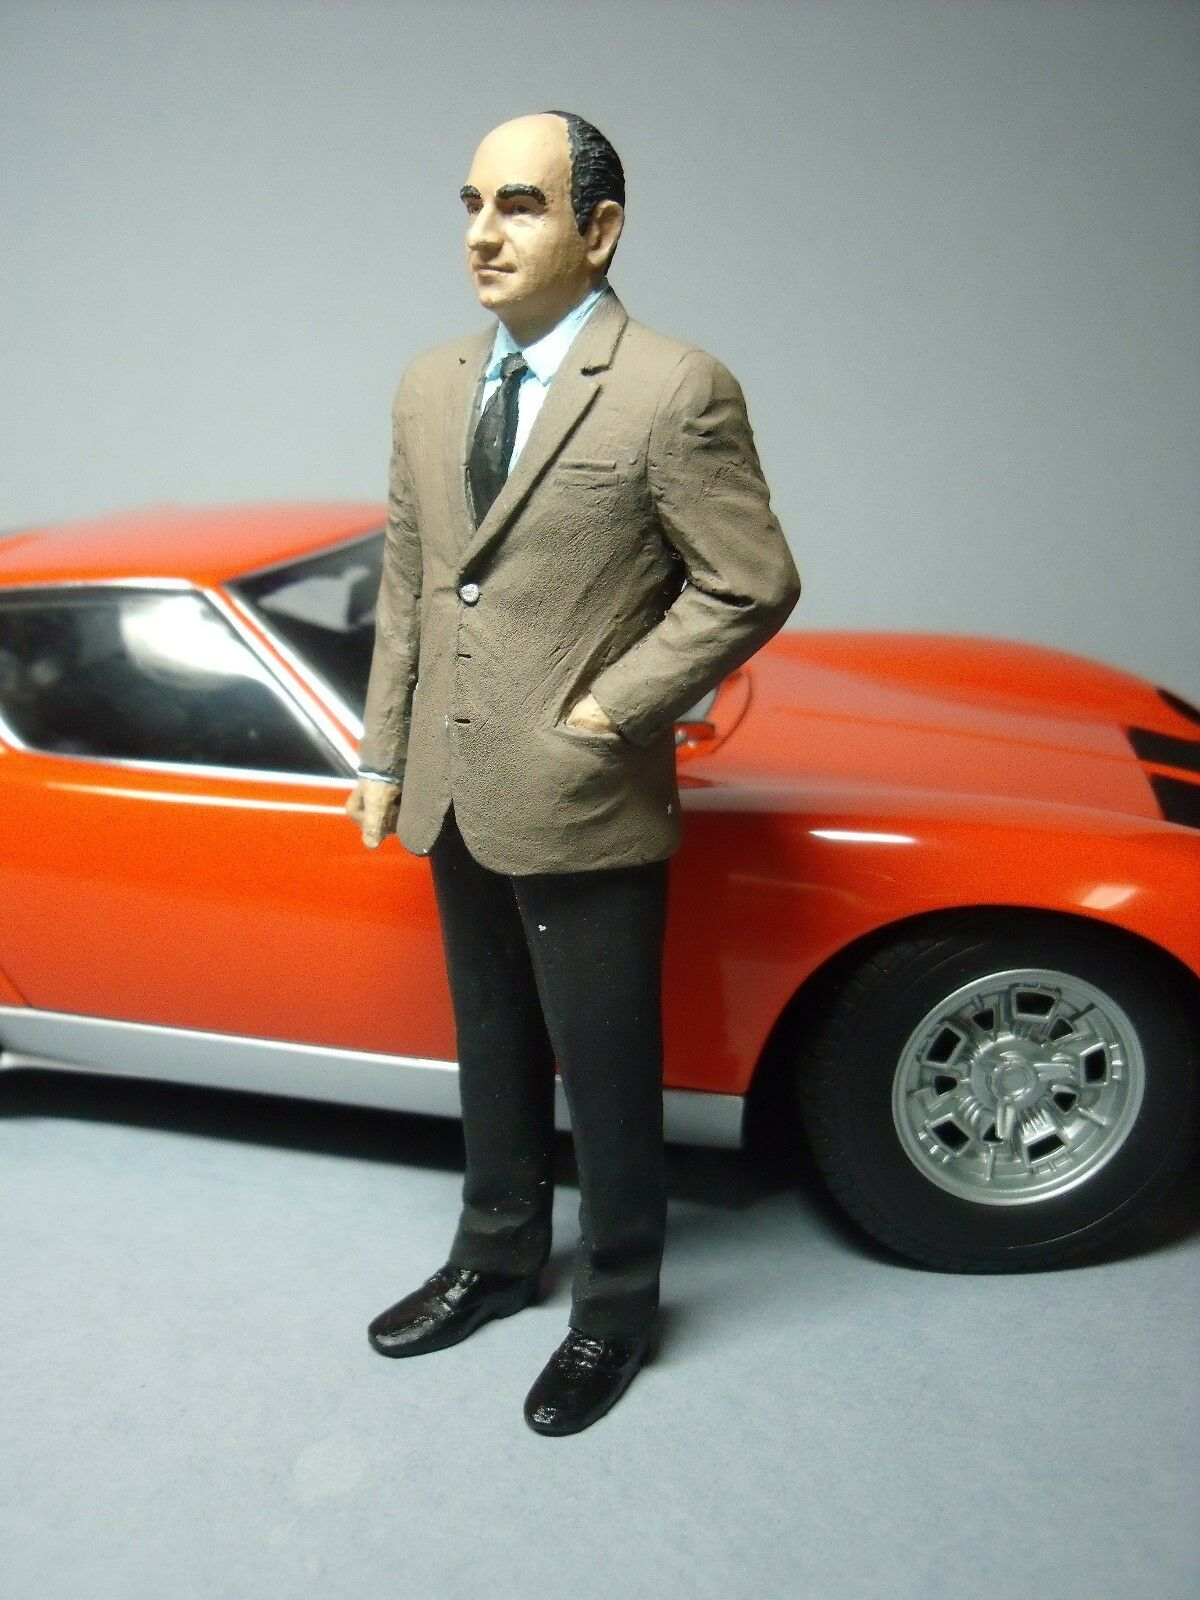 1 18  FIGURE  NUCCIO  BERTONE   PAINTED  BY  VROOM  FOR  LAMBORGHINI   AUTOART